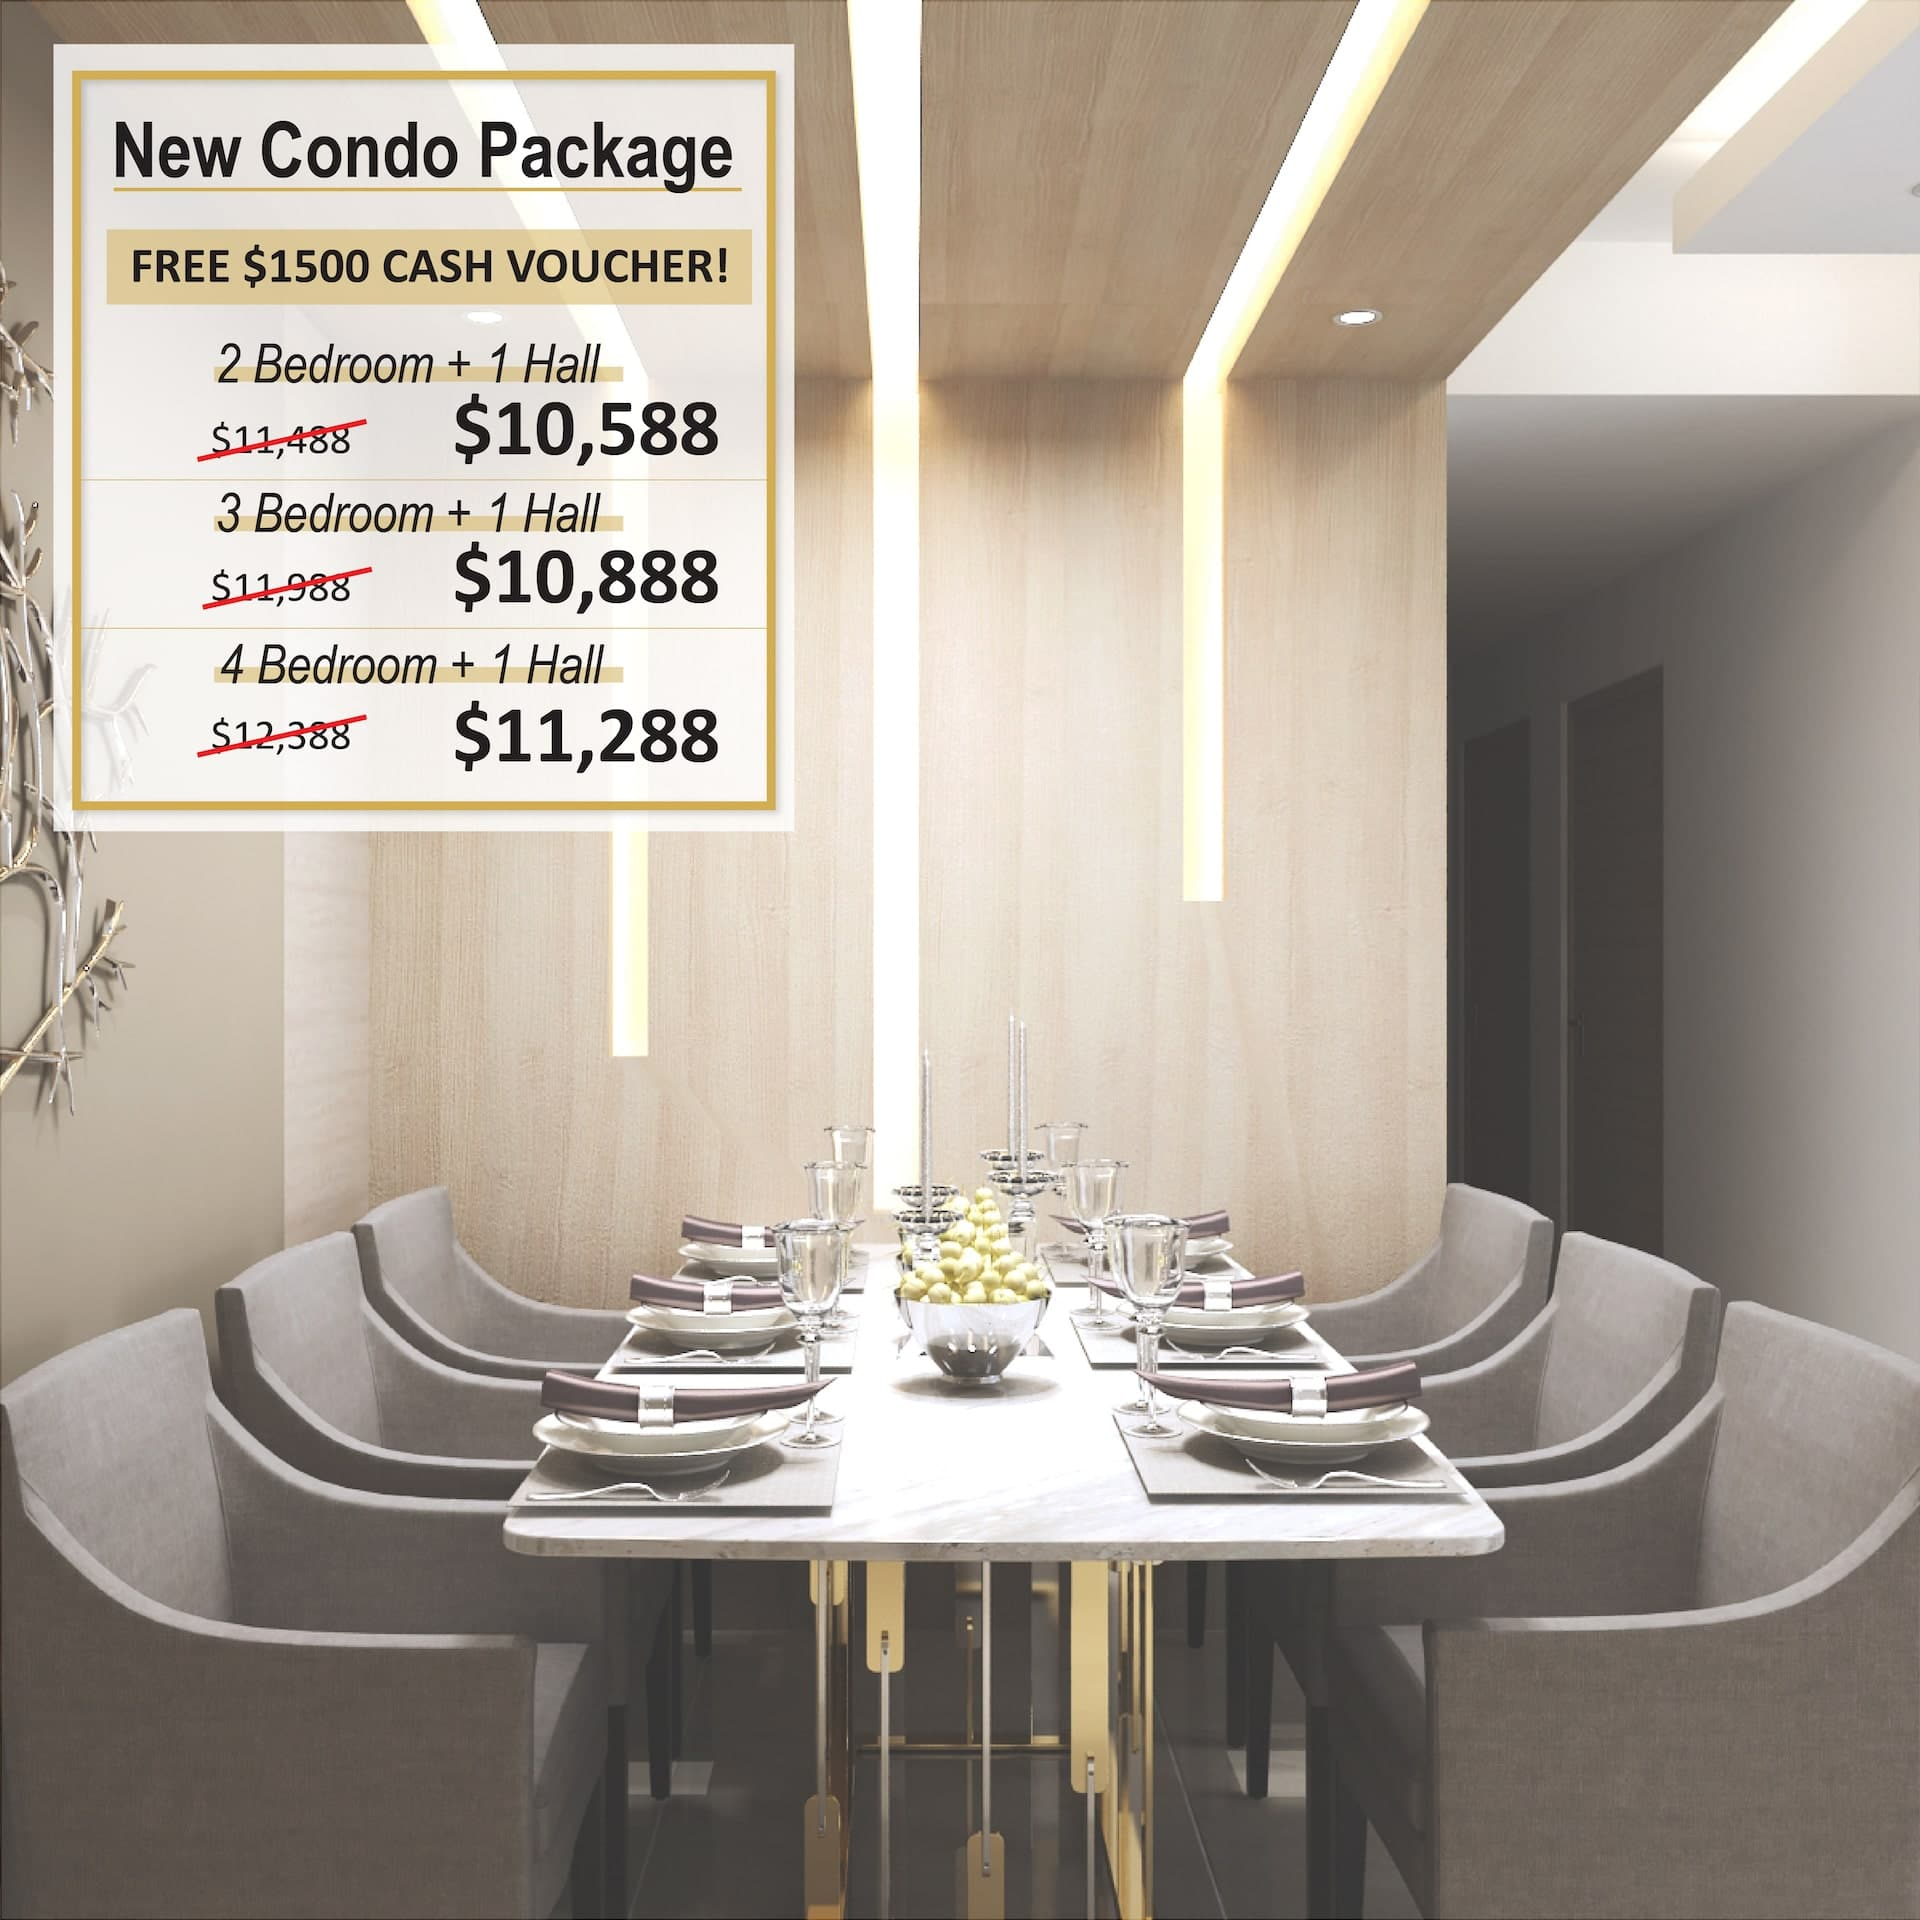 Renovation Package - New Condo